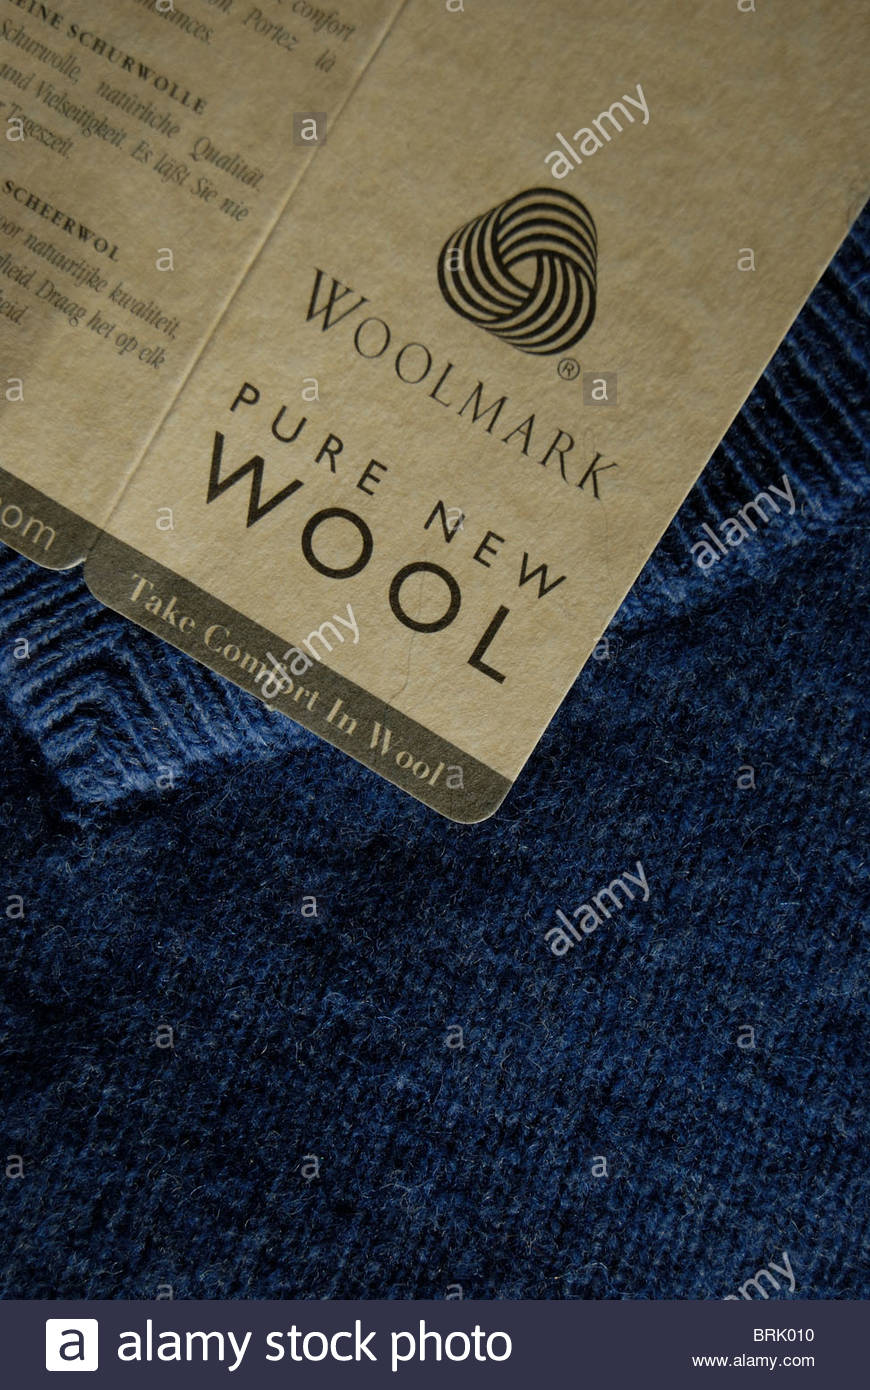 Woolmark on a label of a new blue woolen jumper. - Stock Image